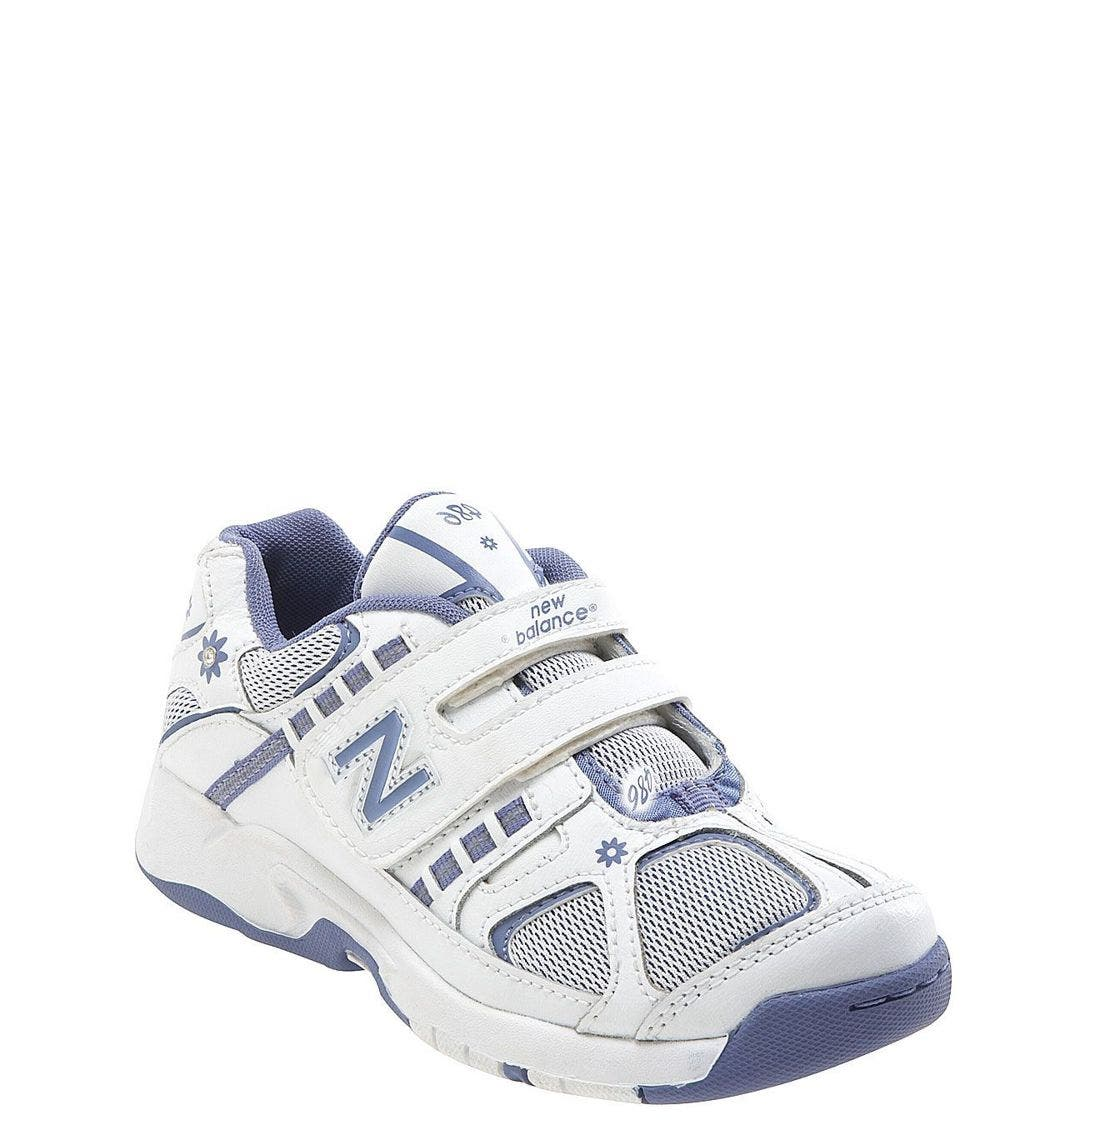 '486' Athletic Shoe,                             Main thumbnail 1, color,                             SIB